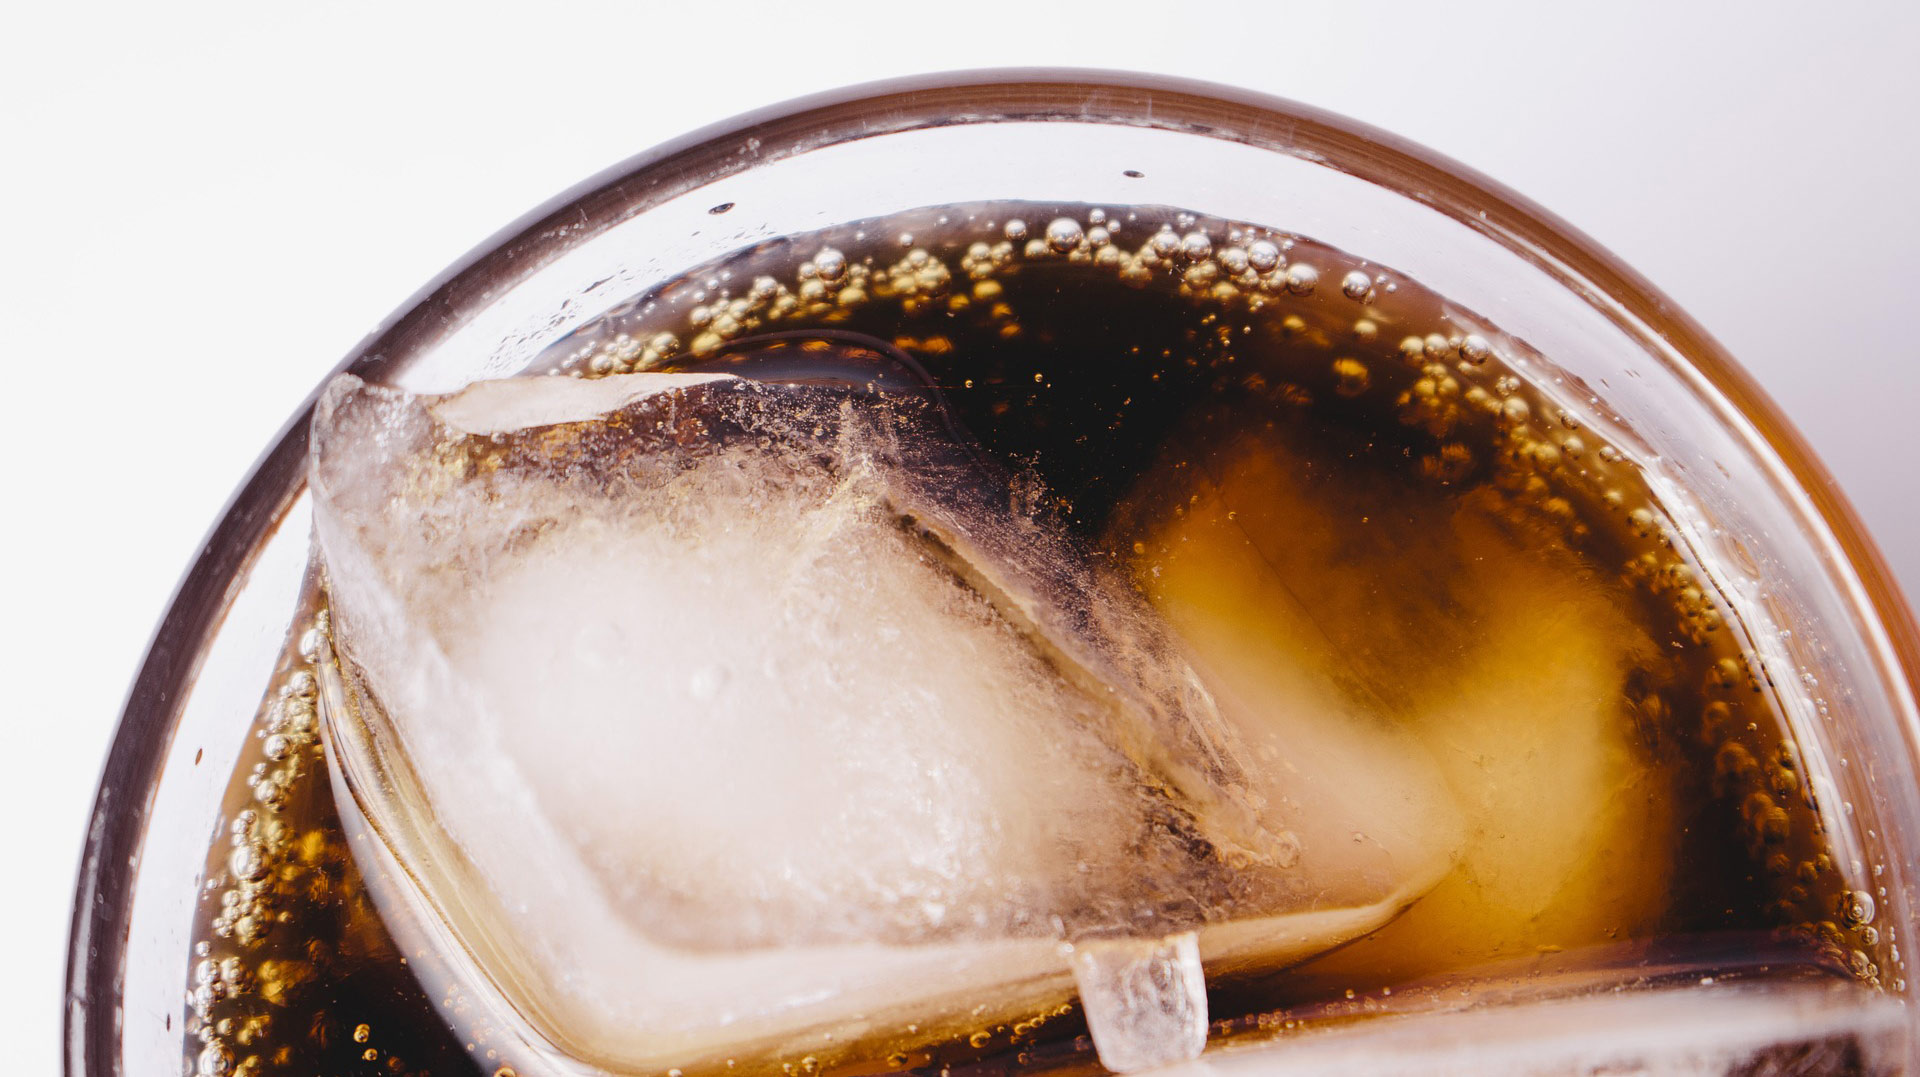 Photo Of Soda With Ice In A Glass. Photo Courtesy Of Pixabay